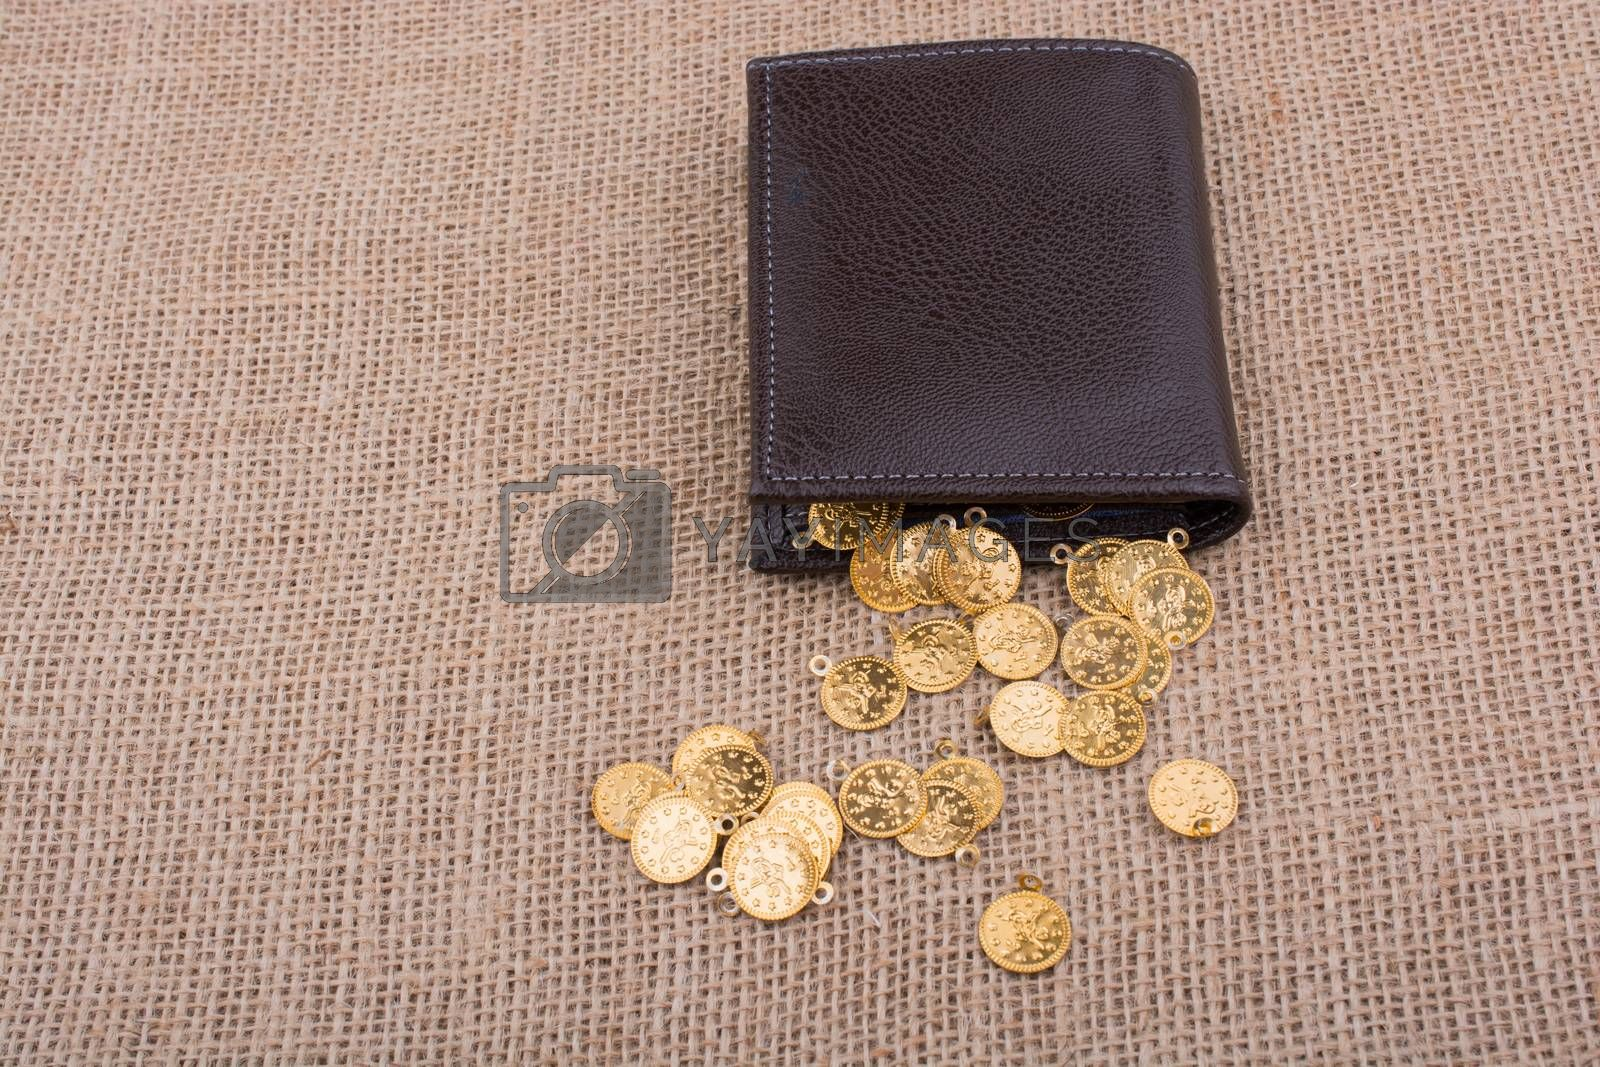 Wallet and plenty of fake gold coins on canvas